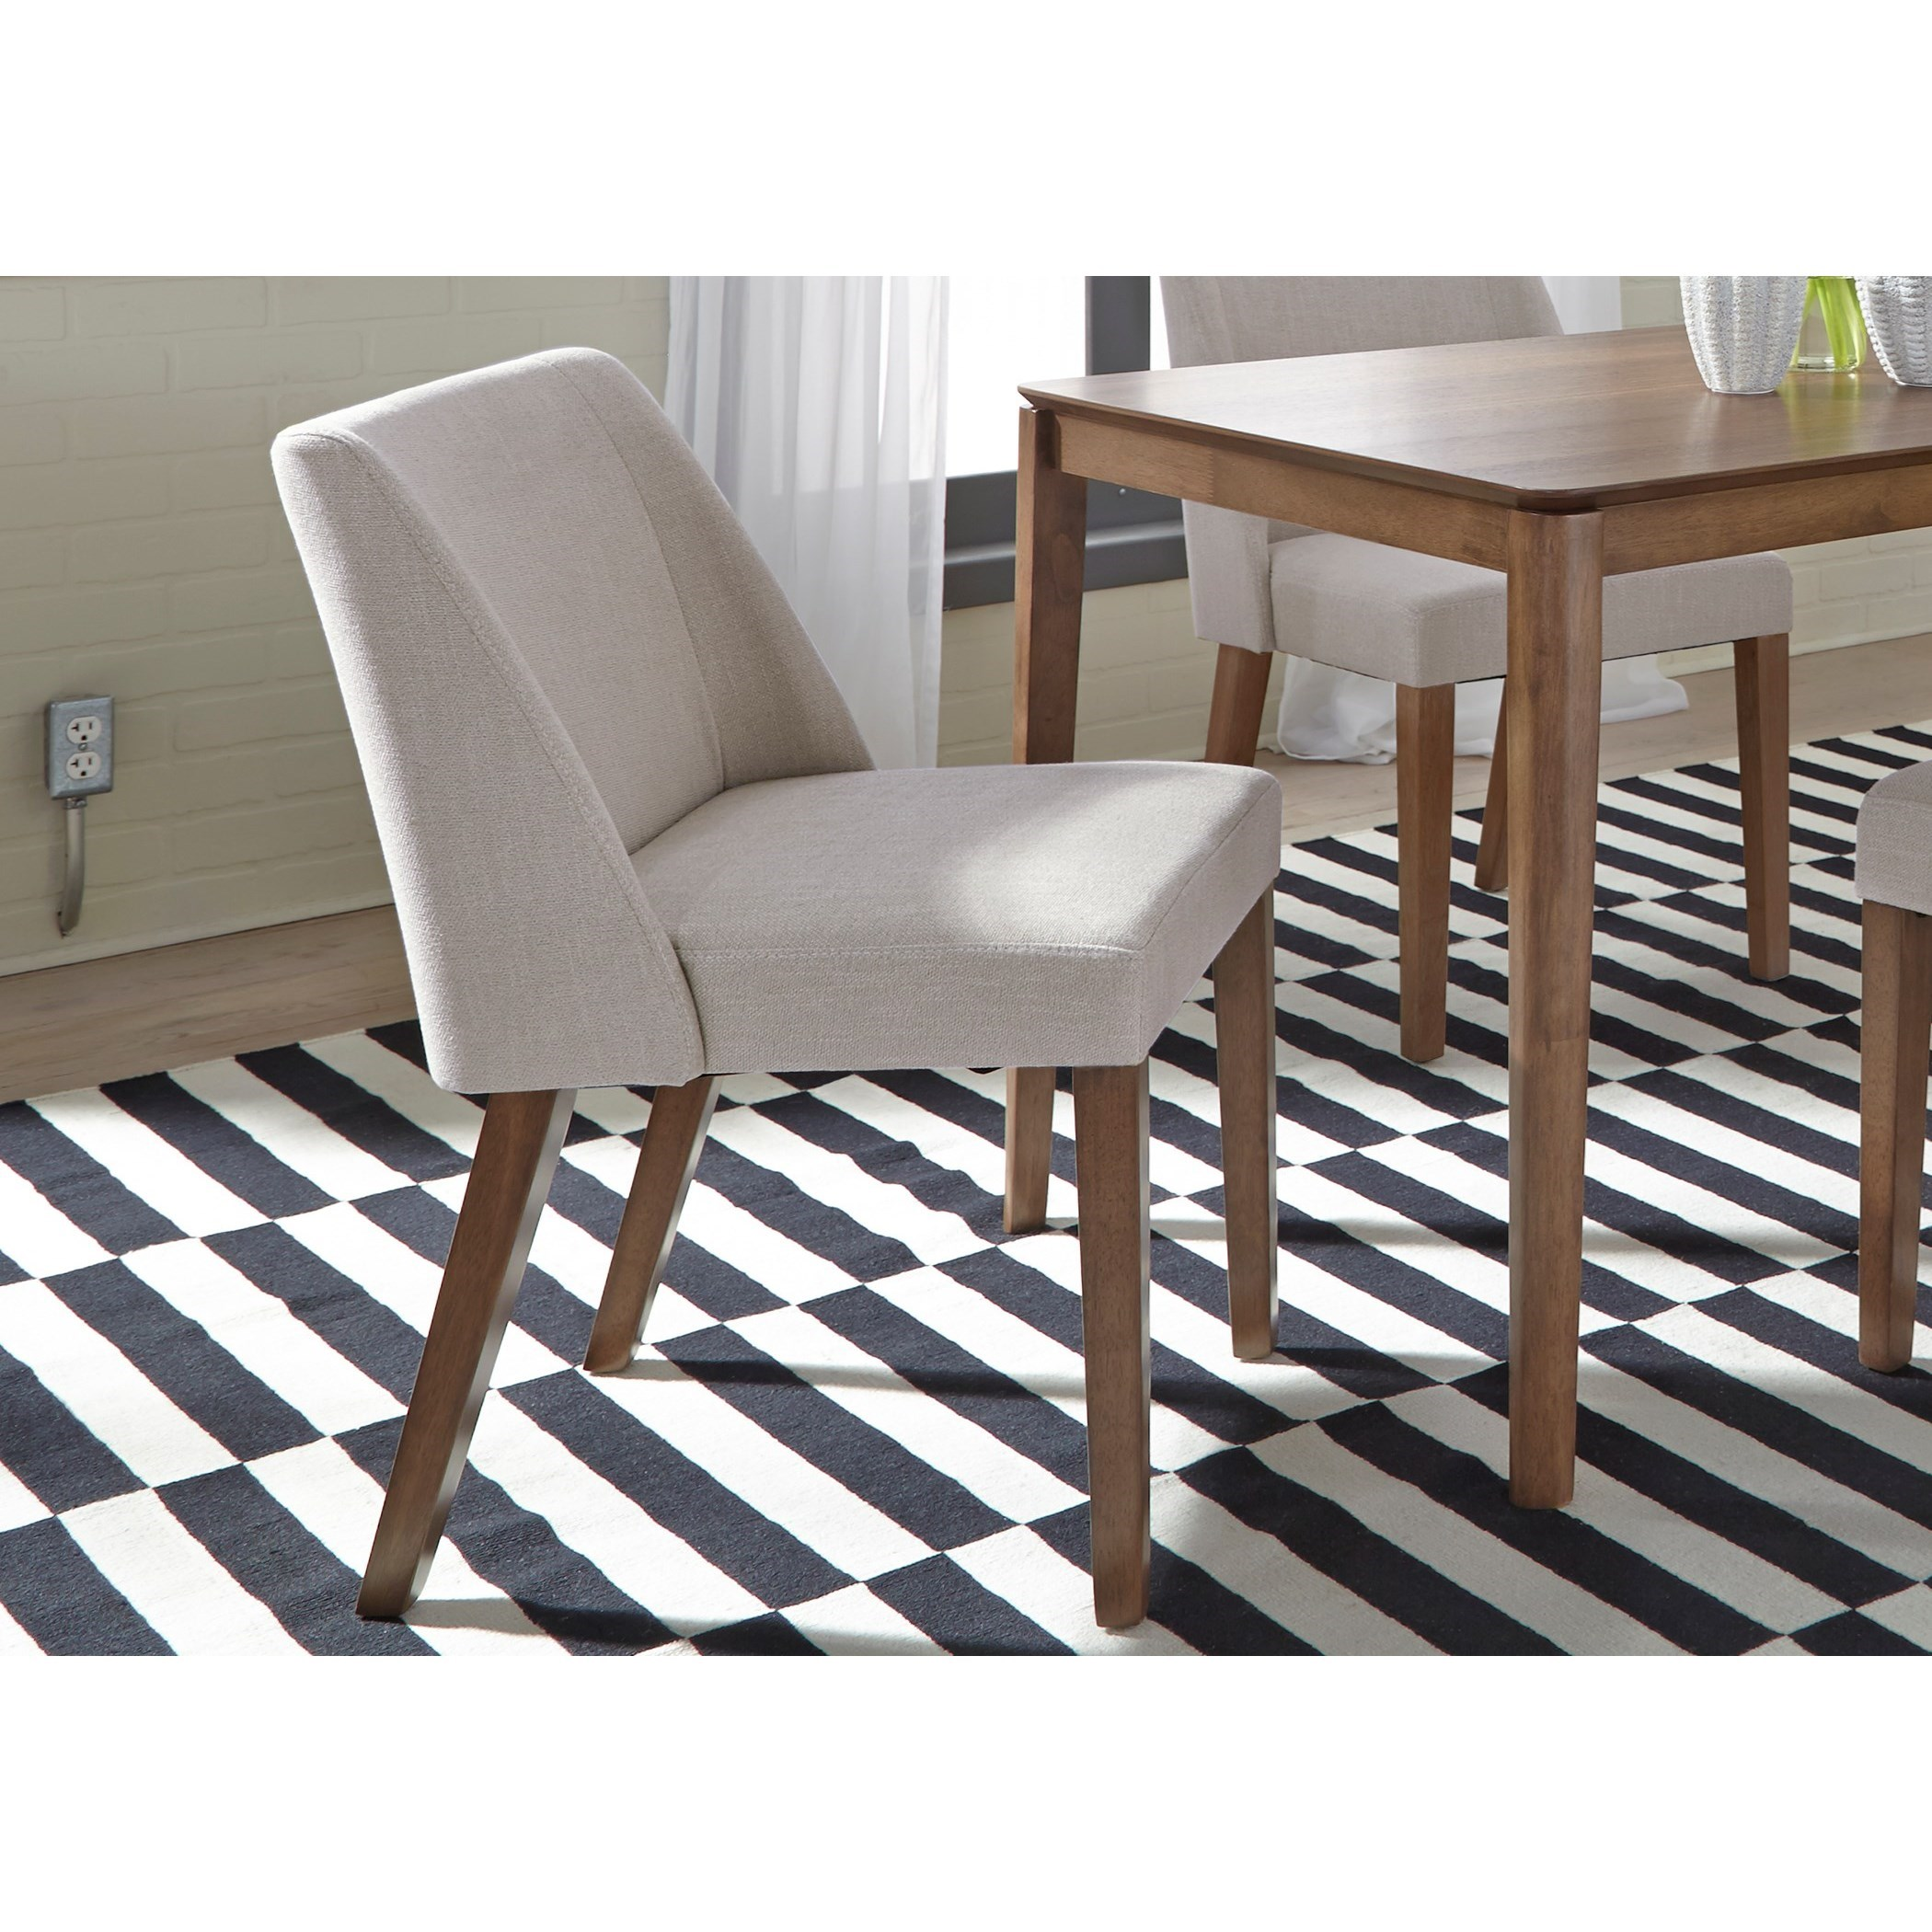 Space Savers Nido Chair  by Liberty Furniture at Standard Furniture